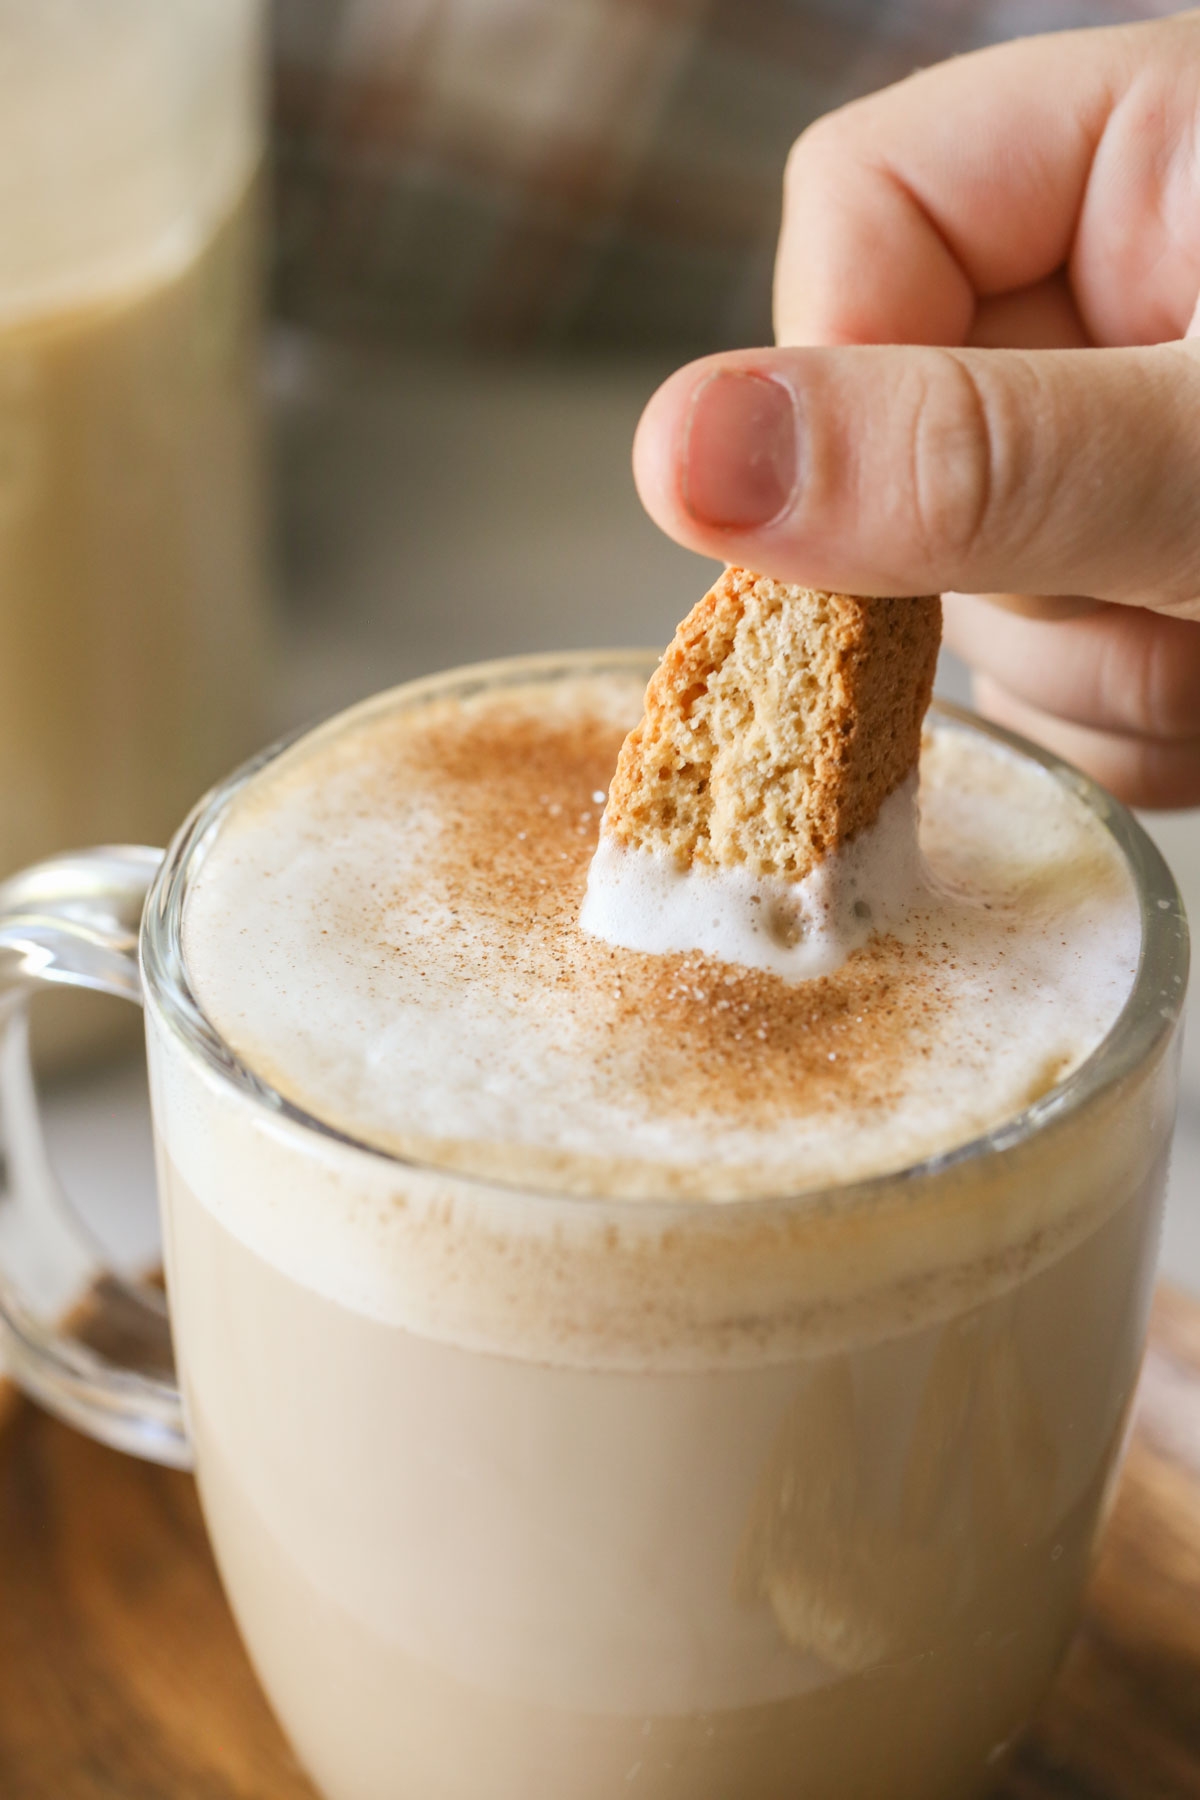 A close up shot of a hand dipping biscotti into a latte in a glass mug, that has Brown Sugar and Cinnamon Coffee Creamer in it and has been dusted with cinnamon and sugar.